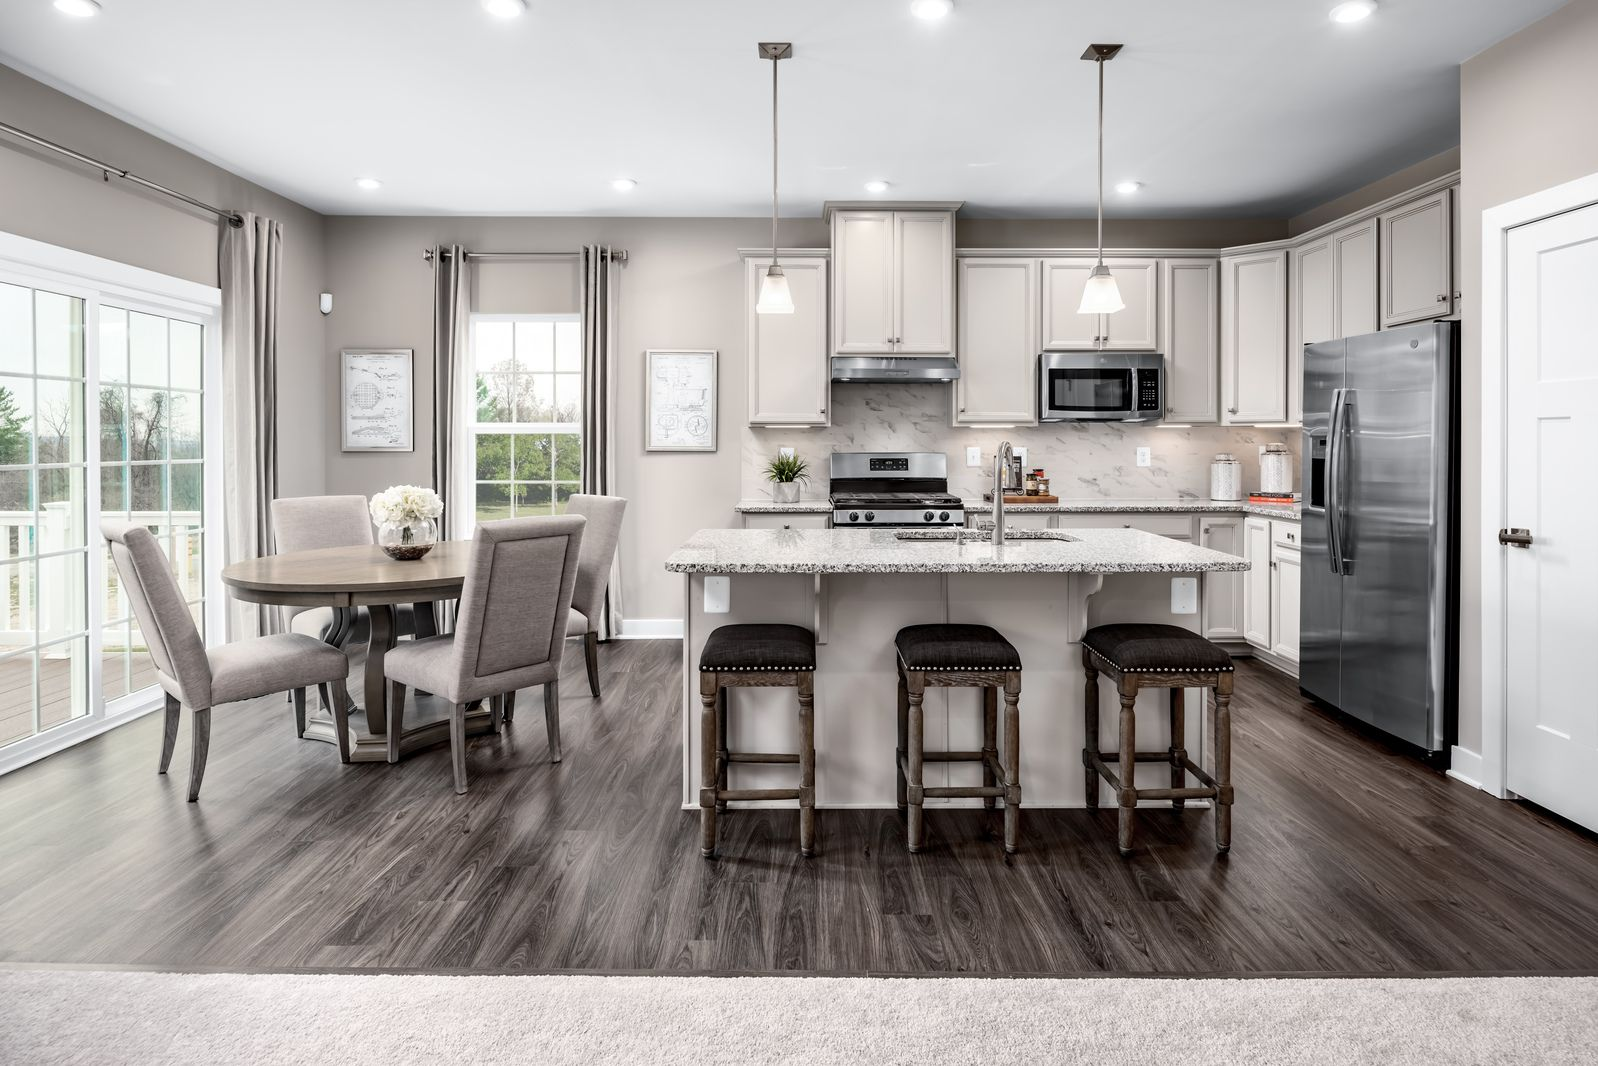 Kitchen featured in the Alberti Ranch with Full Basement By Ryan Homes in Chicago, IL